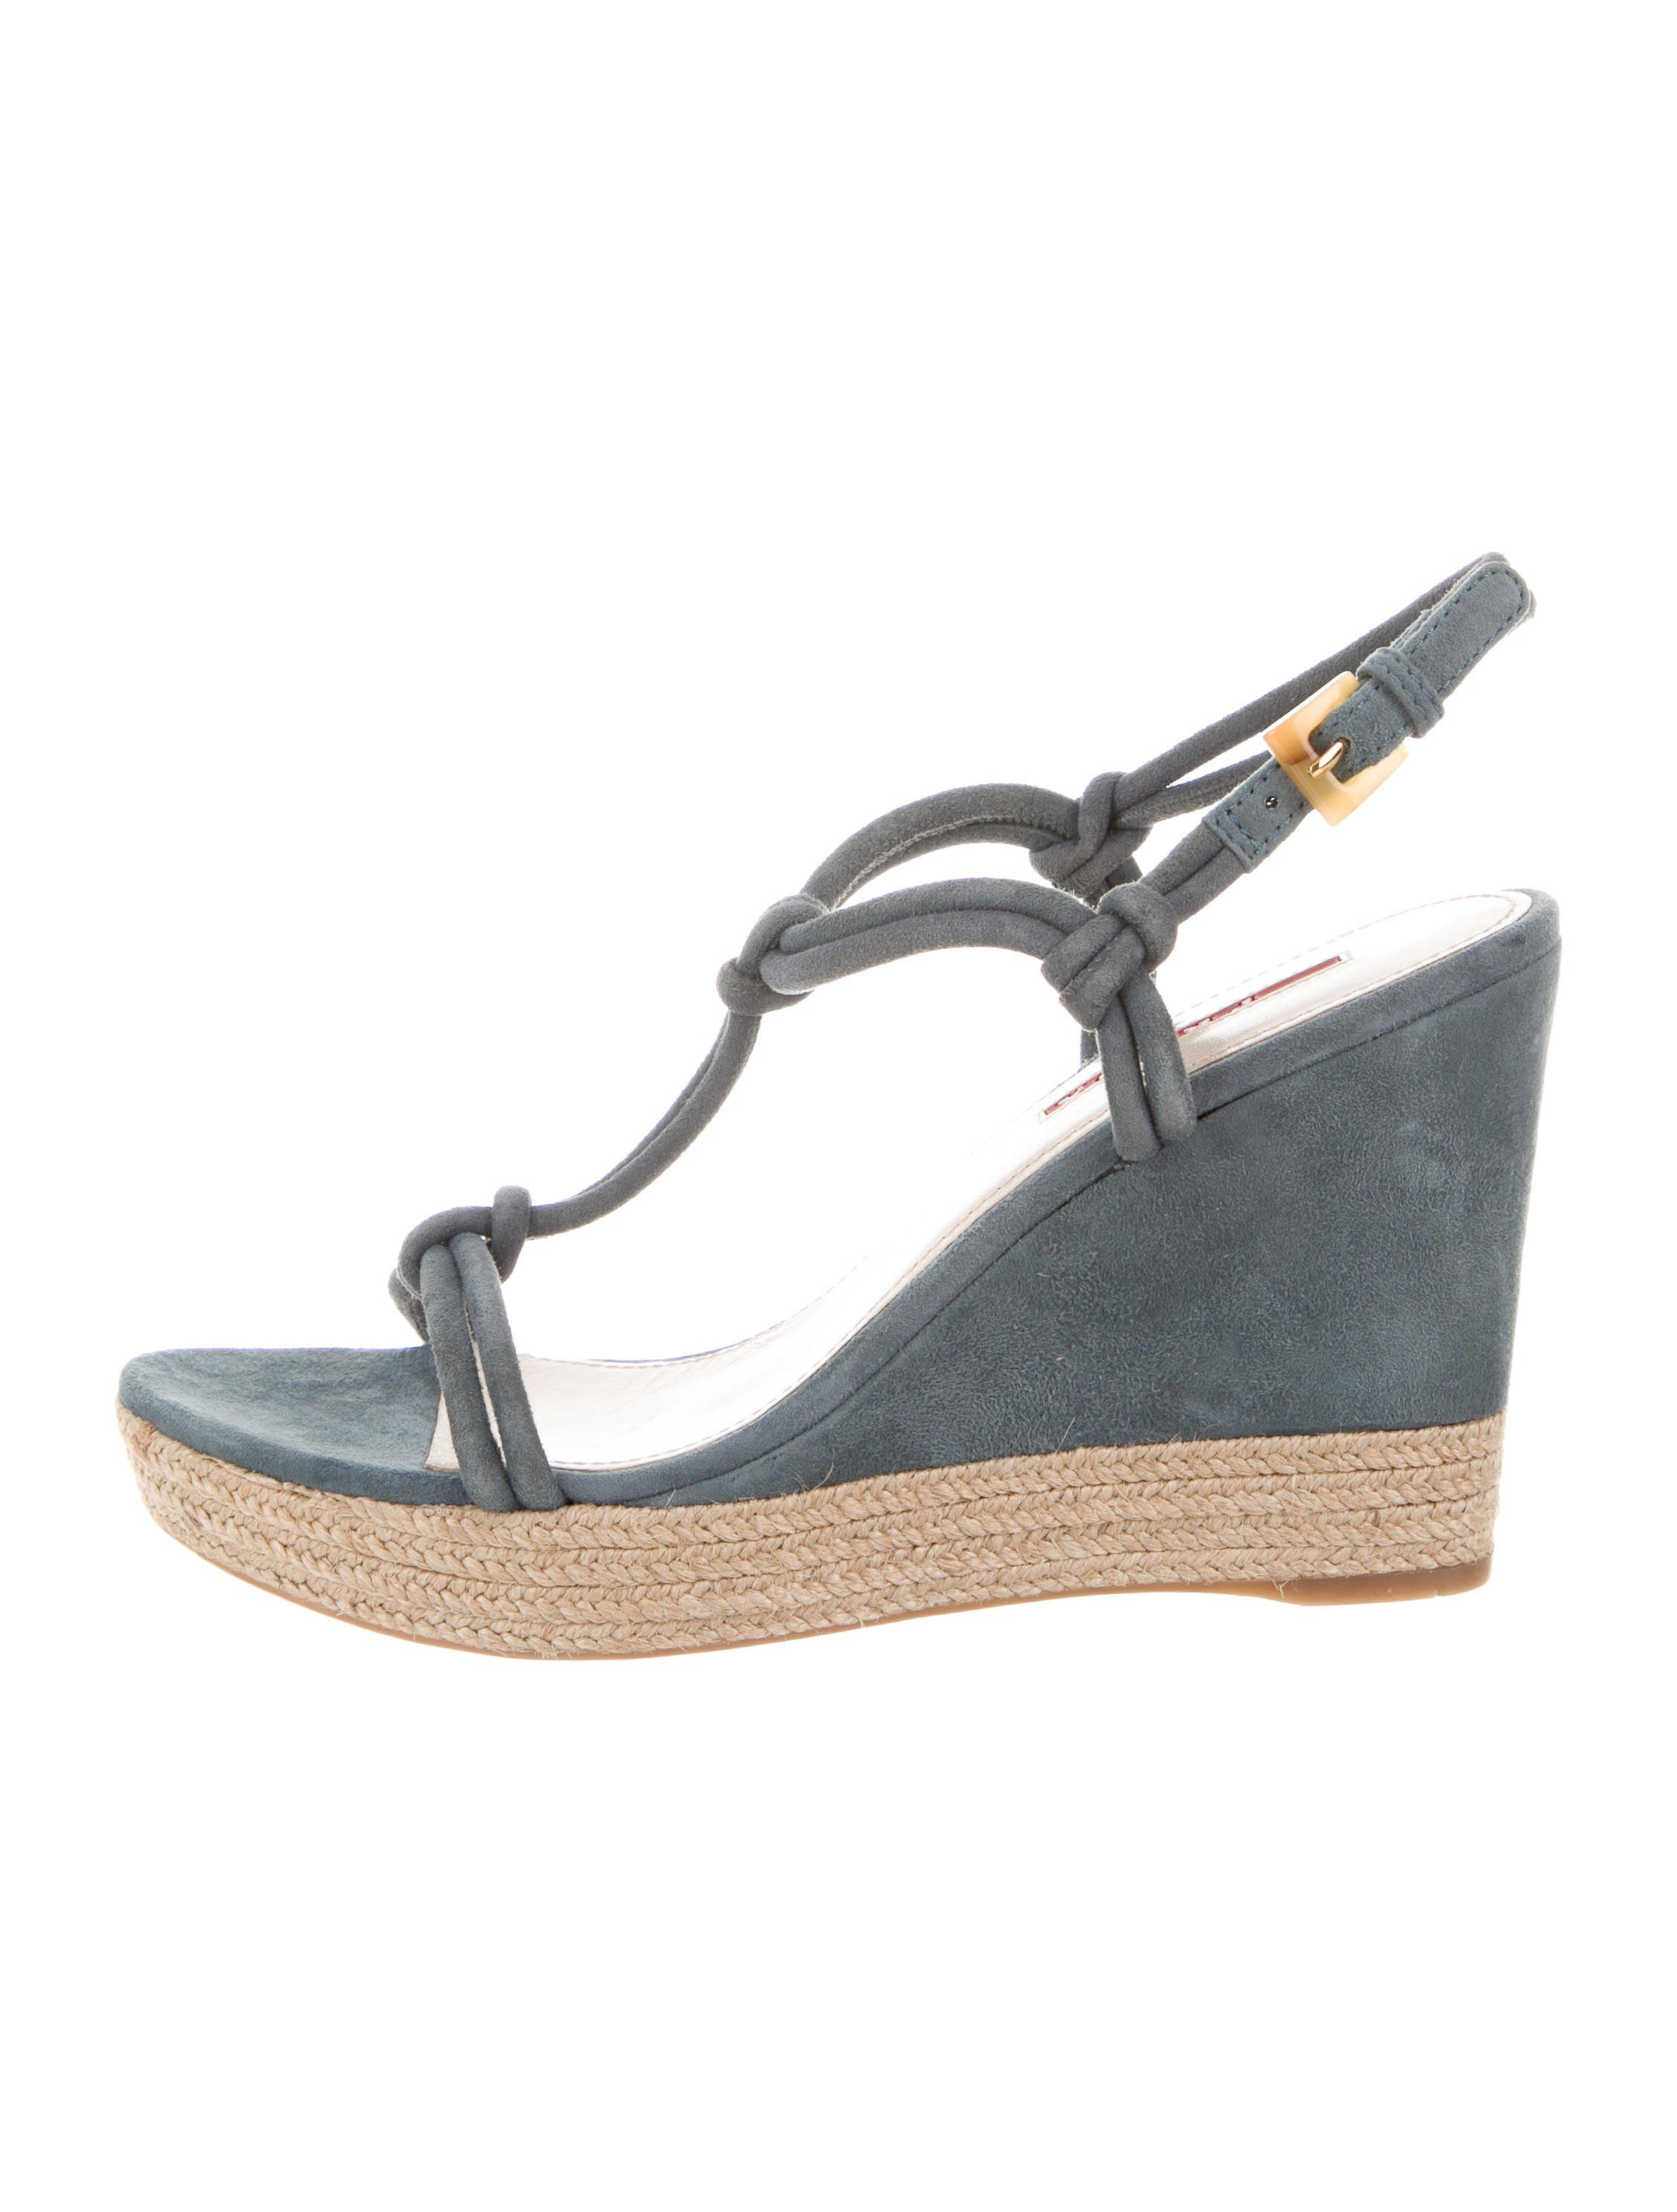 0ac45474b905 Blue suede Prada Sport round-toe wedge sandals featuring covered heels and  buckle closures at